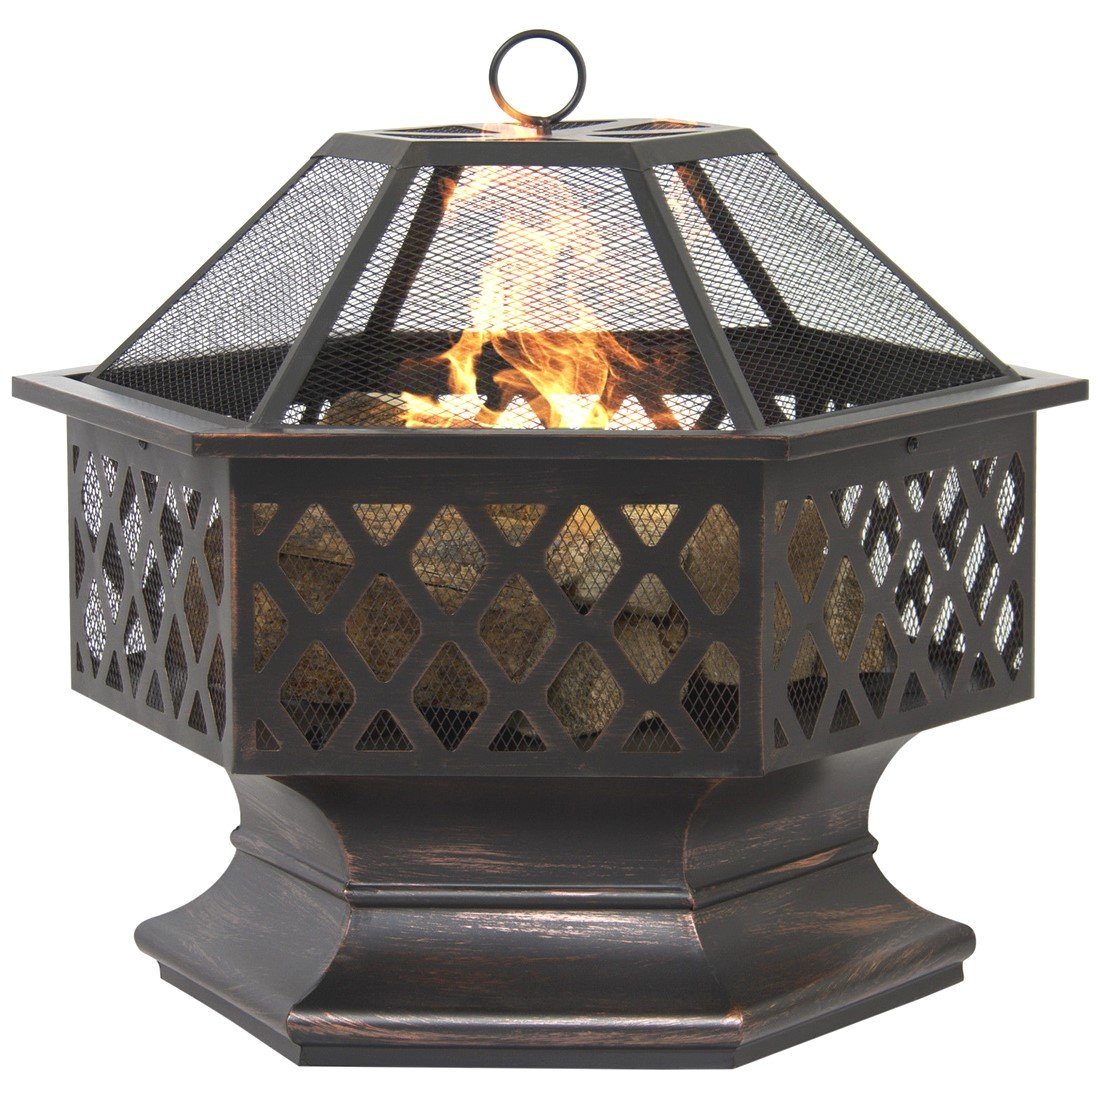 BCP Hex Shaped Fire Pit Outdoor Home Garden Backyard Firepit Bowl Fireplace by nopshop